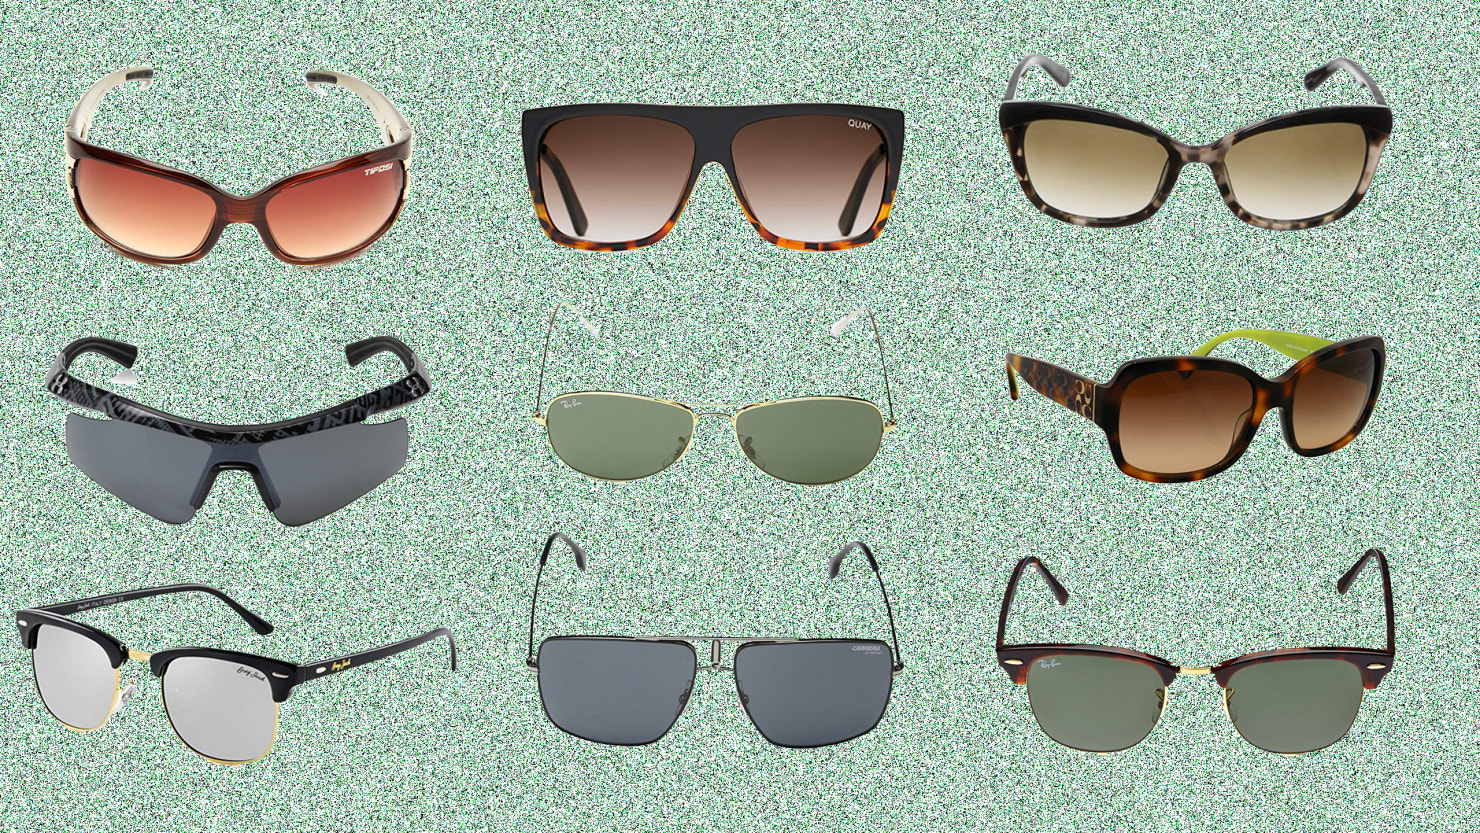 Scouted: Five Styles of Sunglasses Fit For Any Face, From Aviator to Cateye